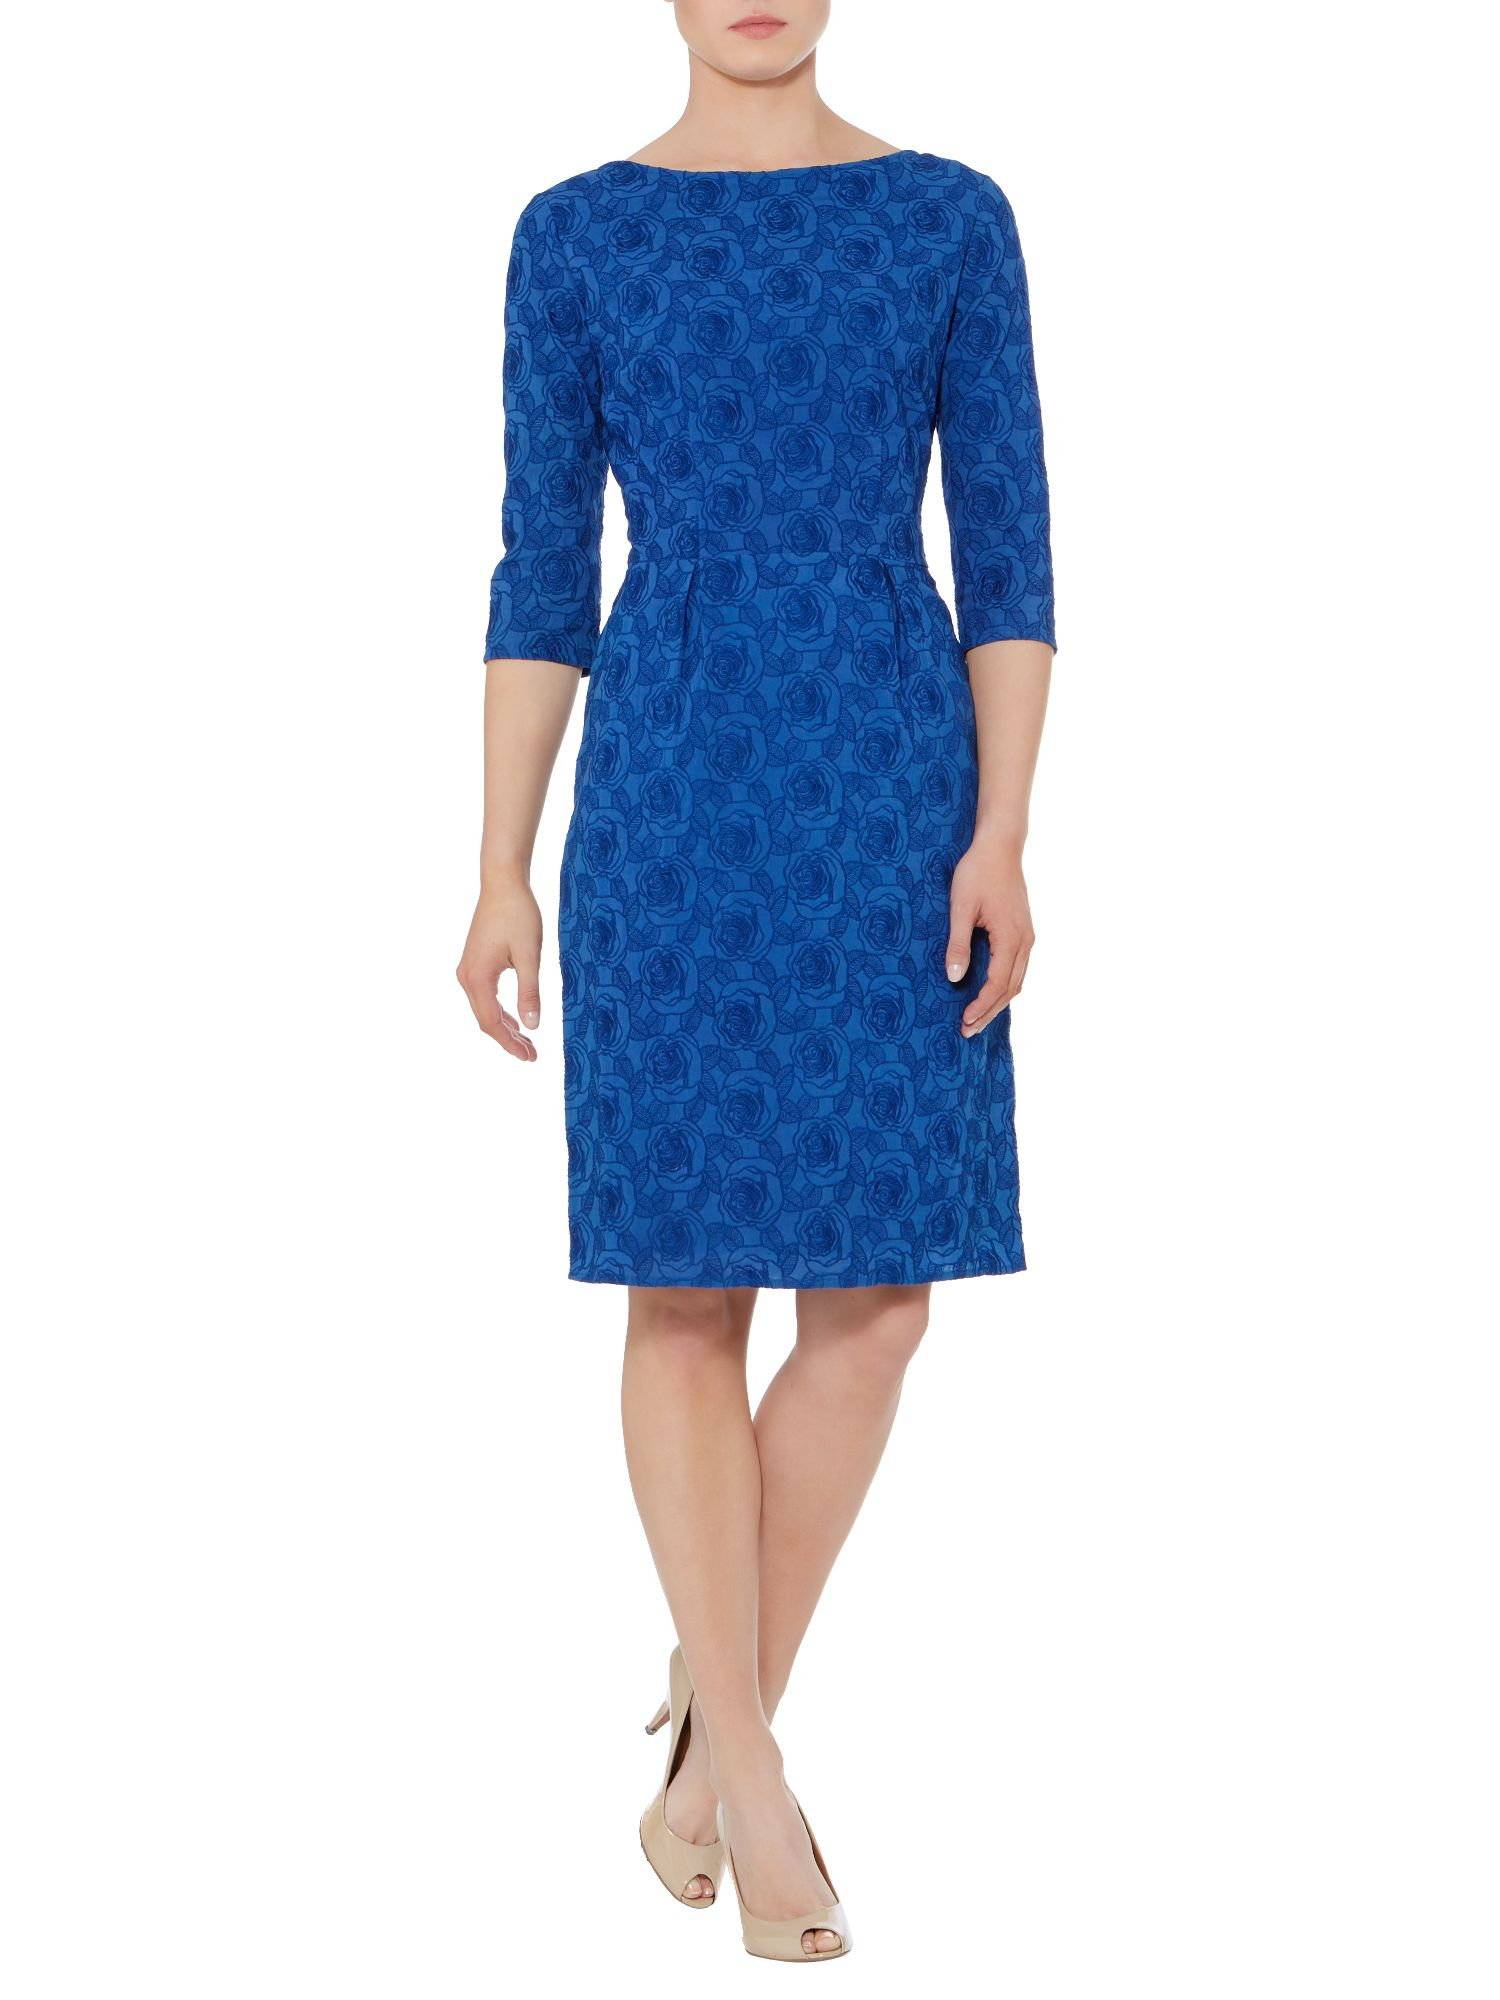 Floral Jacquard shift 3/4 sleeve dress